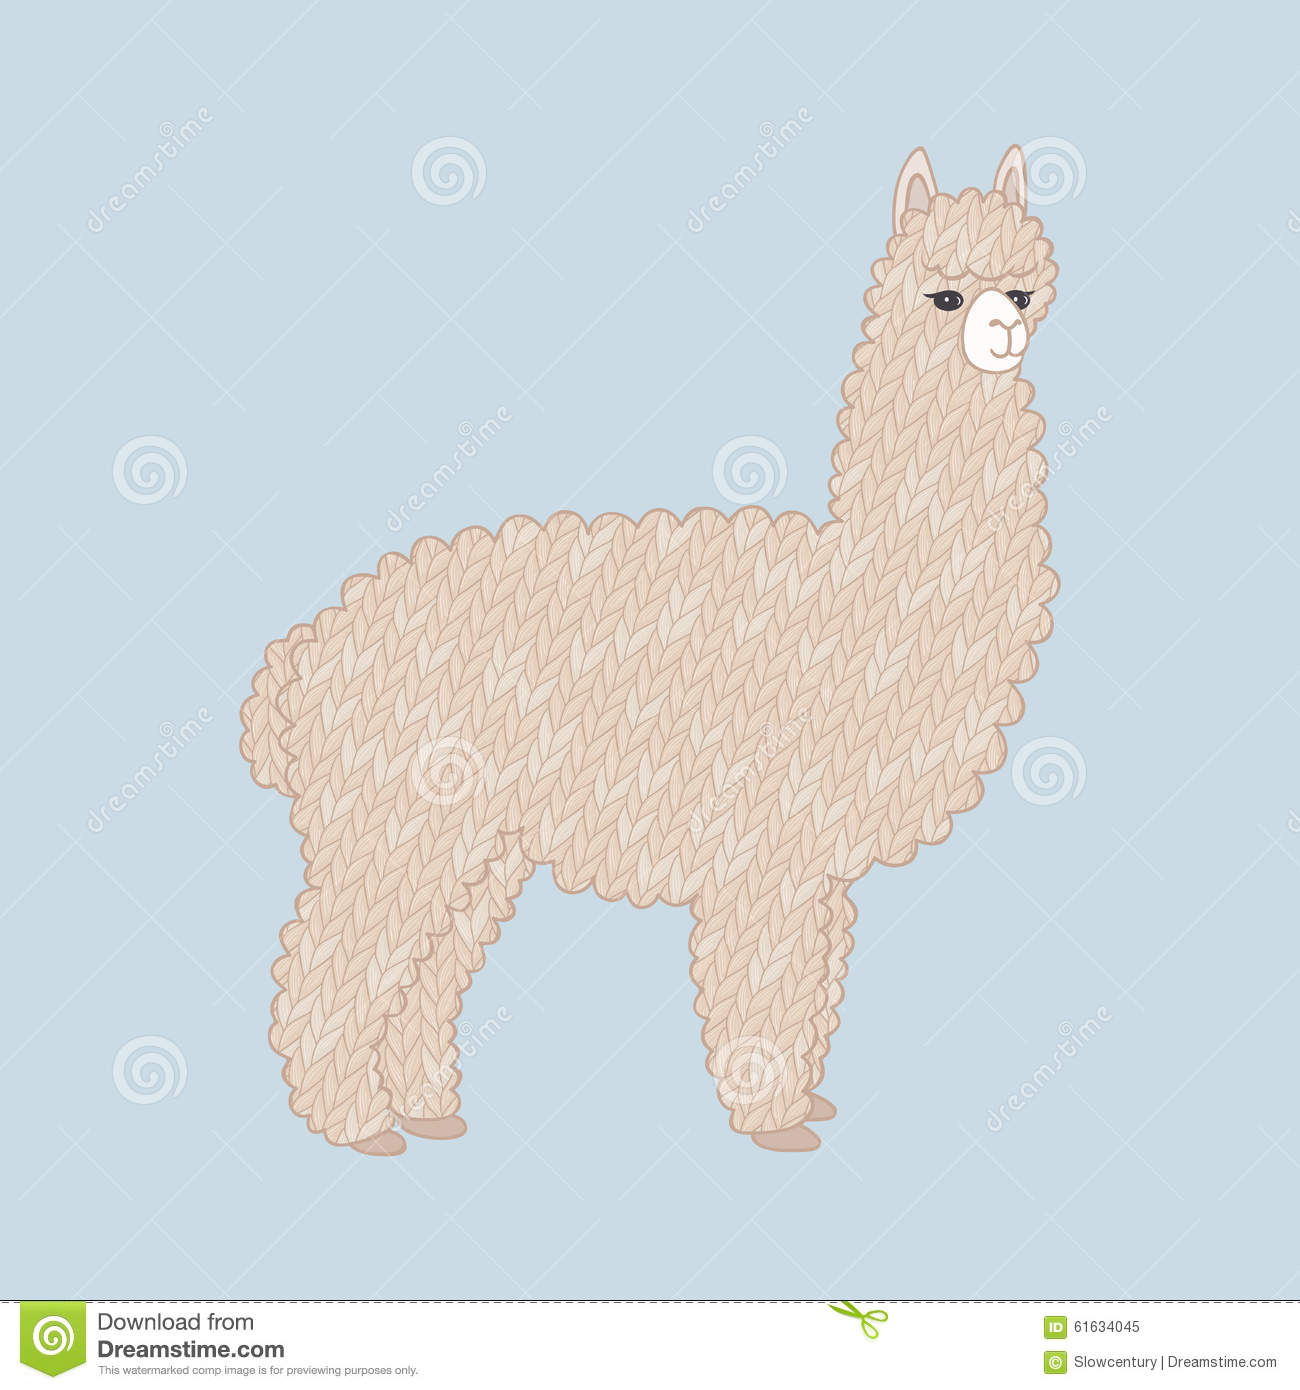 Cute Knitted Alpaca Stock Vector - Image: 61634045